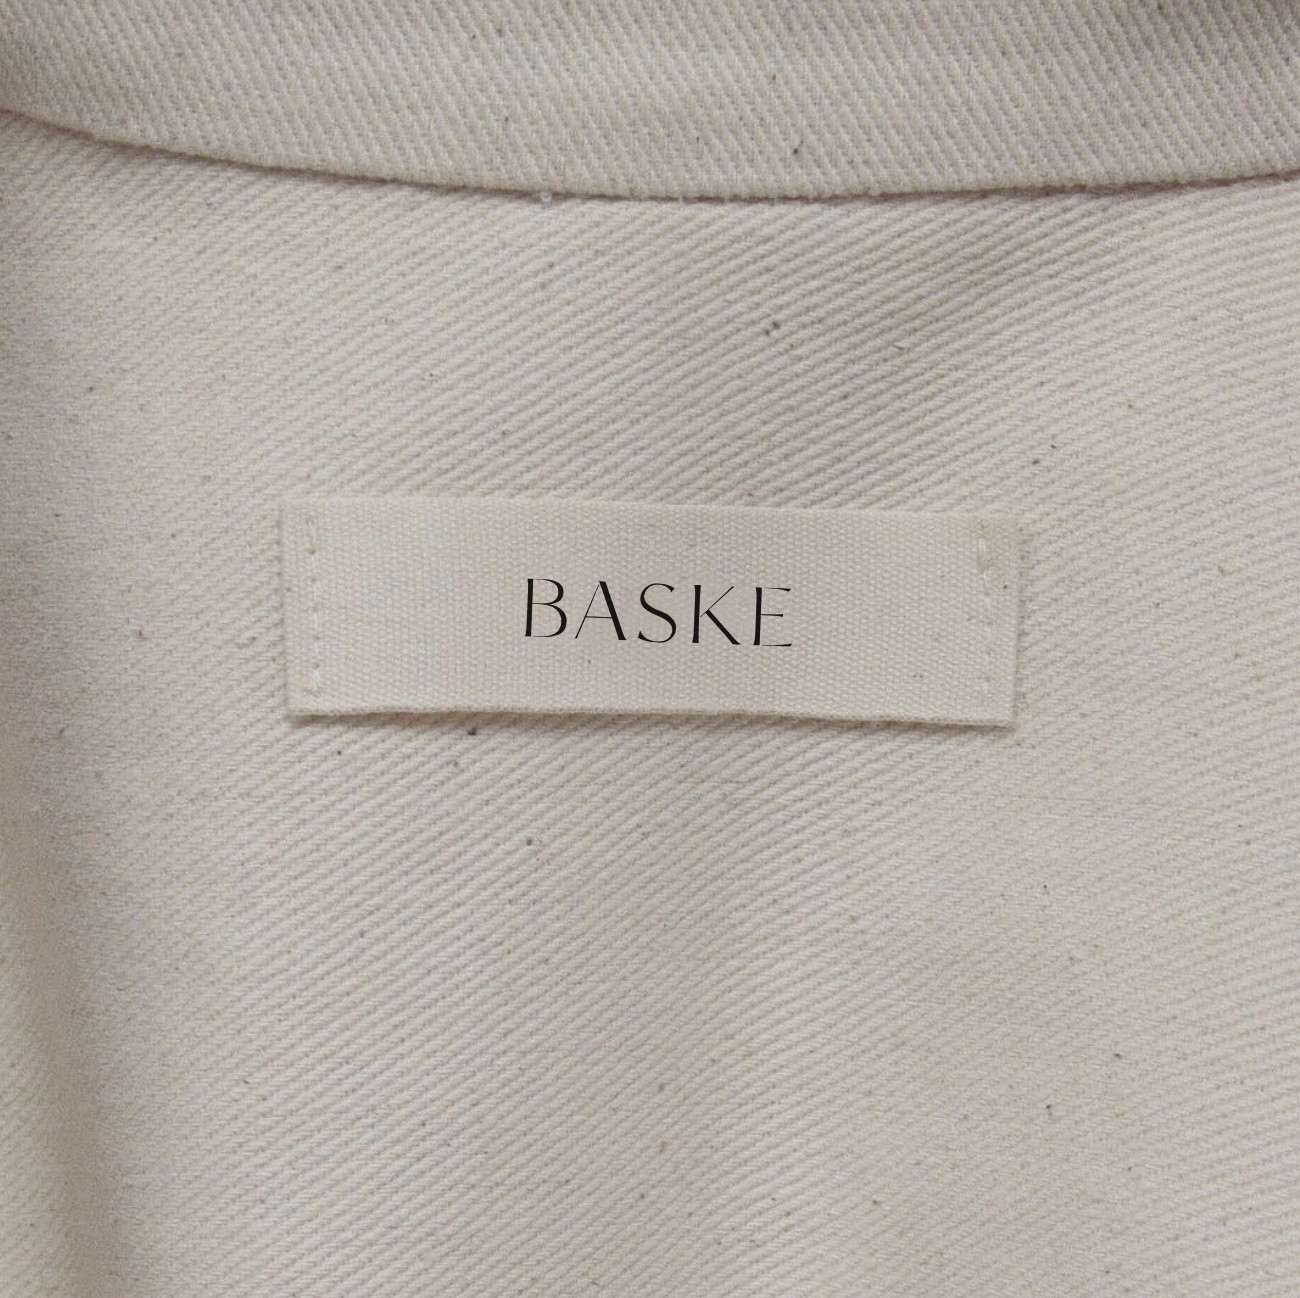 Baske-Clothing-Tag_C1.jpg